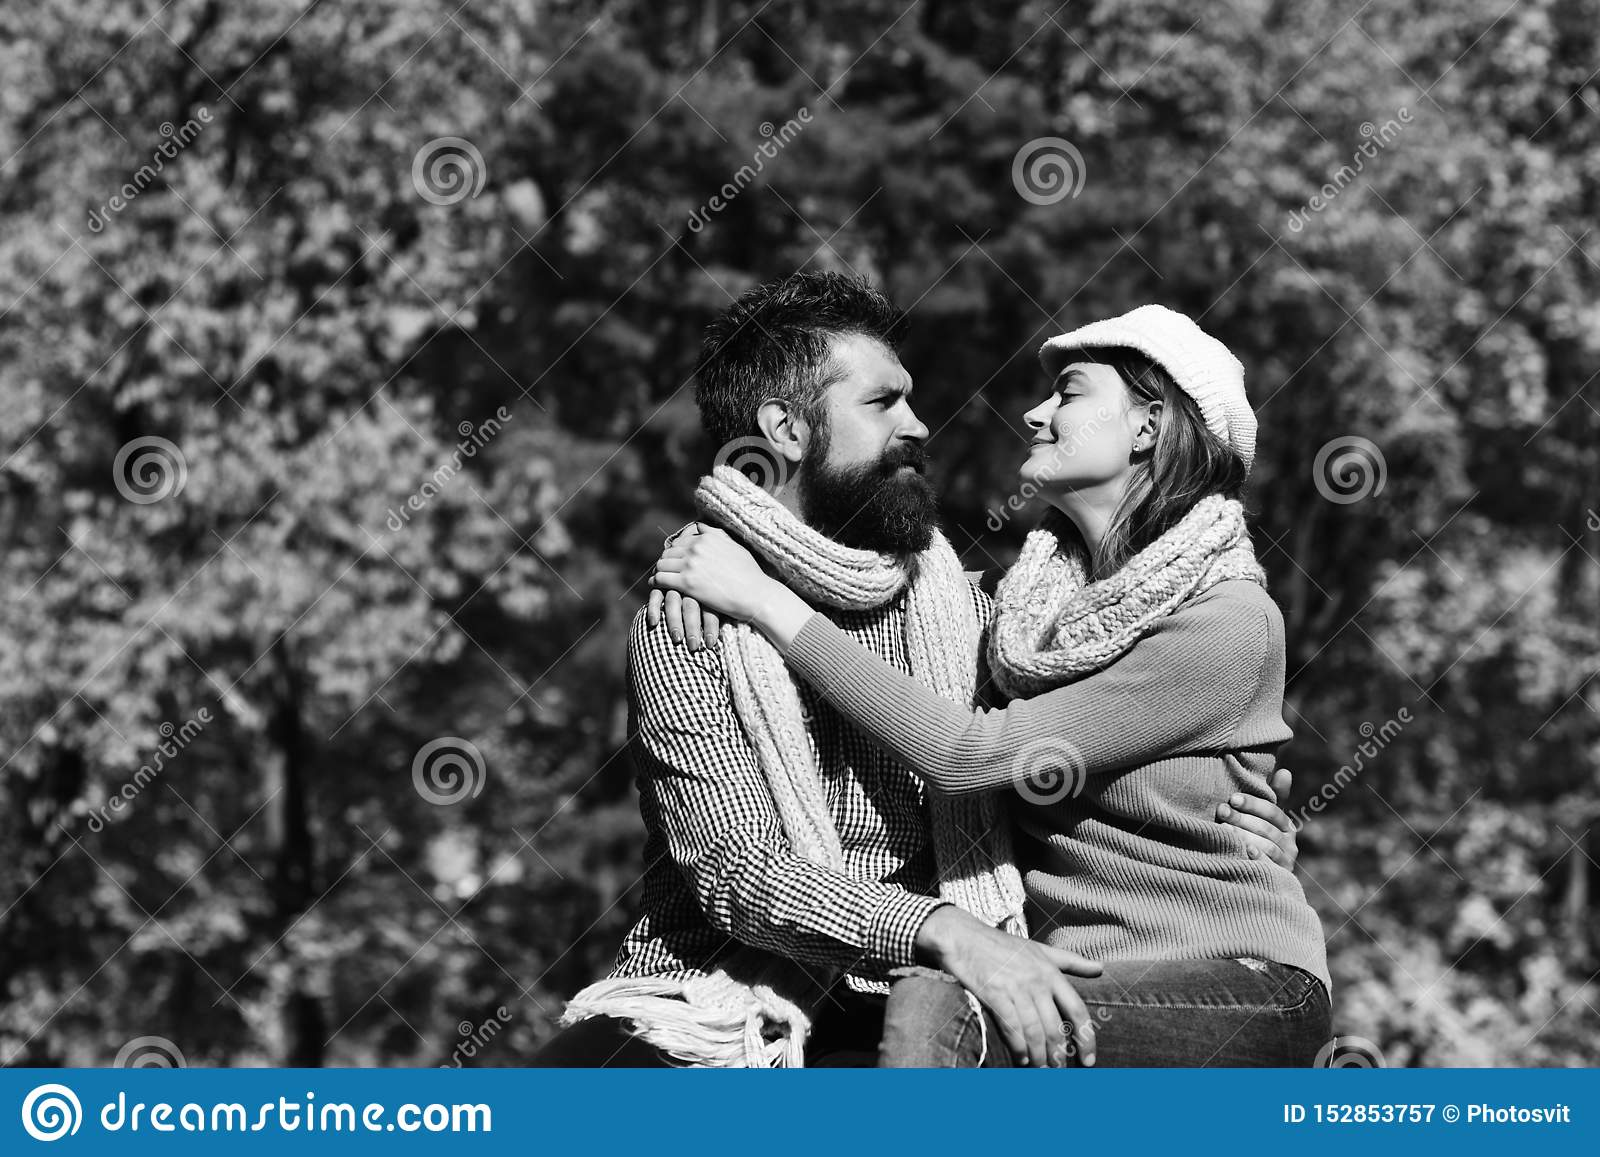 Girl and bearded guy or happy lovers on date hug